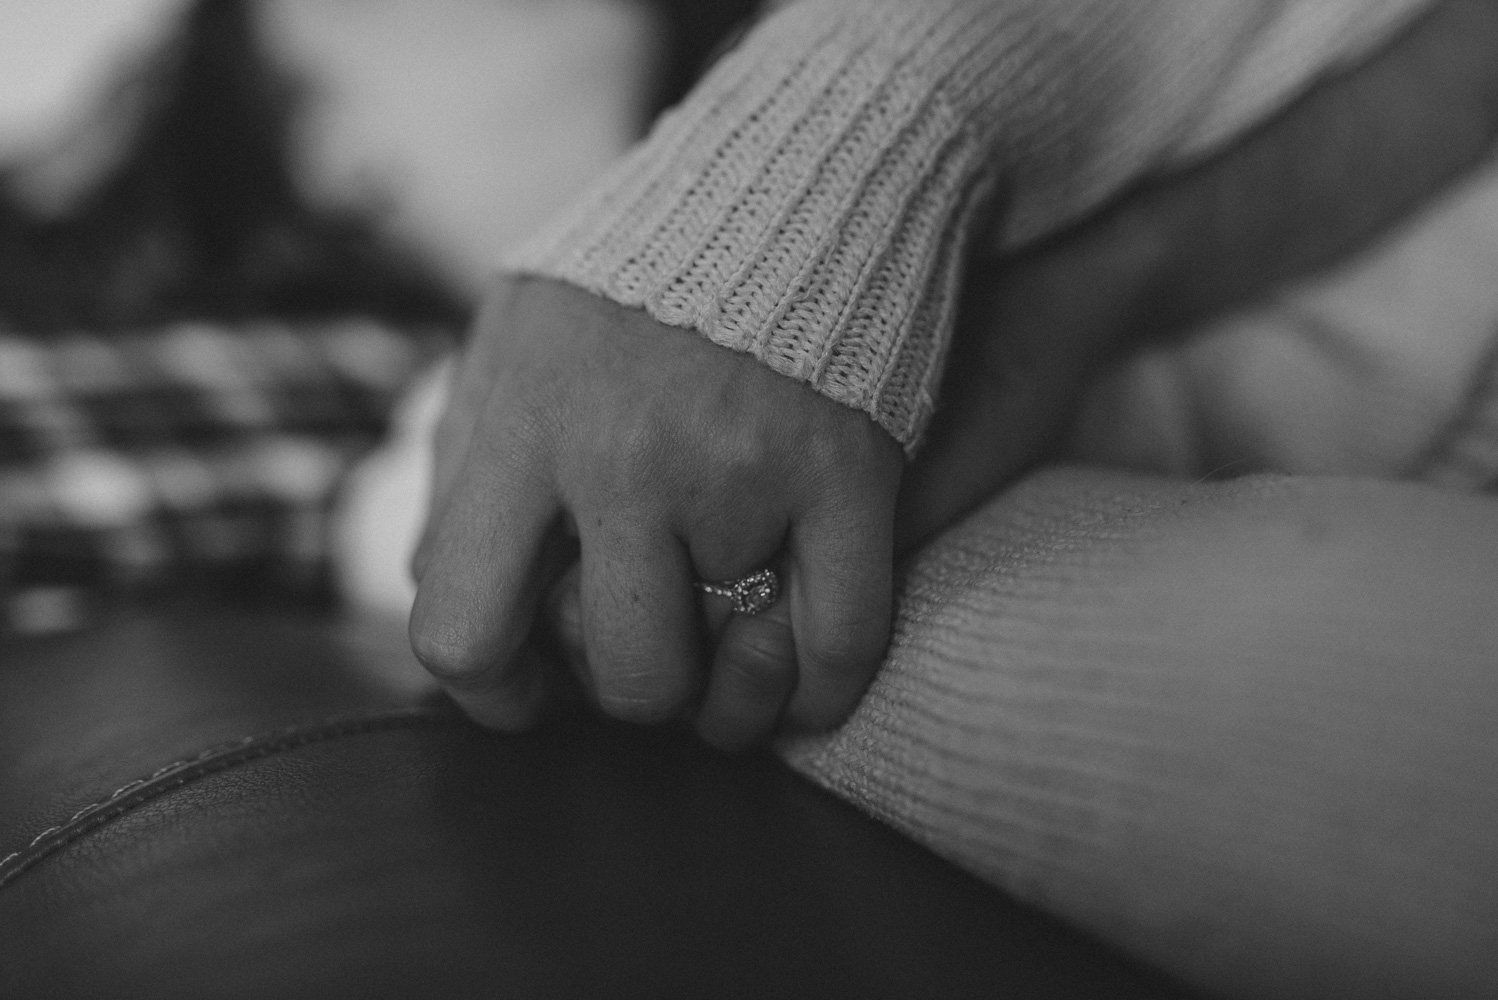 Home session- couple holding hands photo.